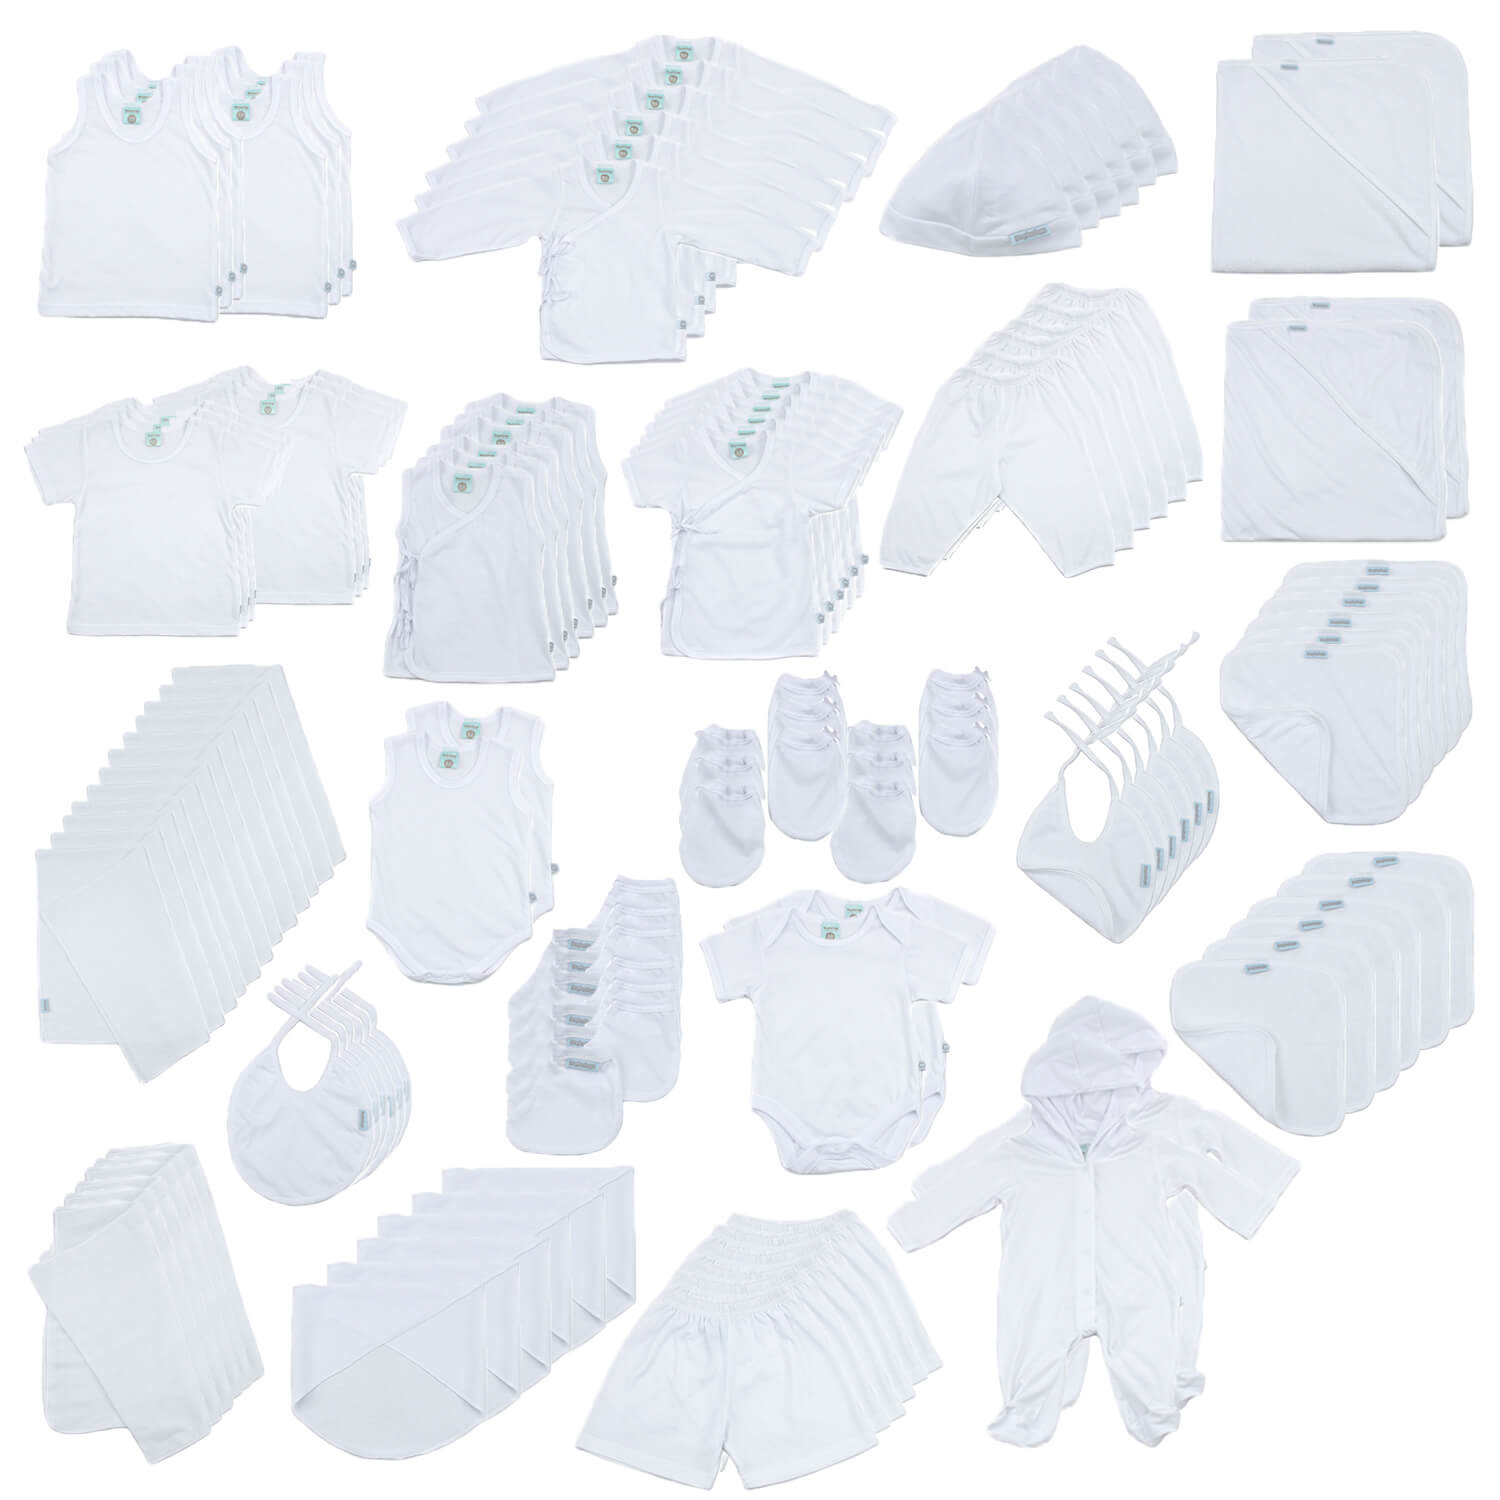 (Unisex) Beginnings Newborn Essentials Full Set